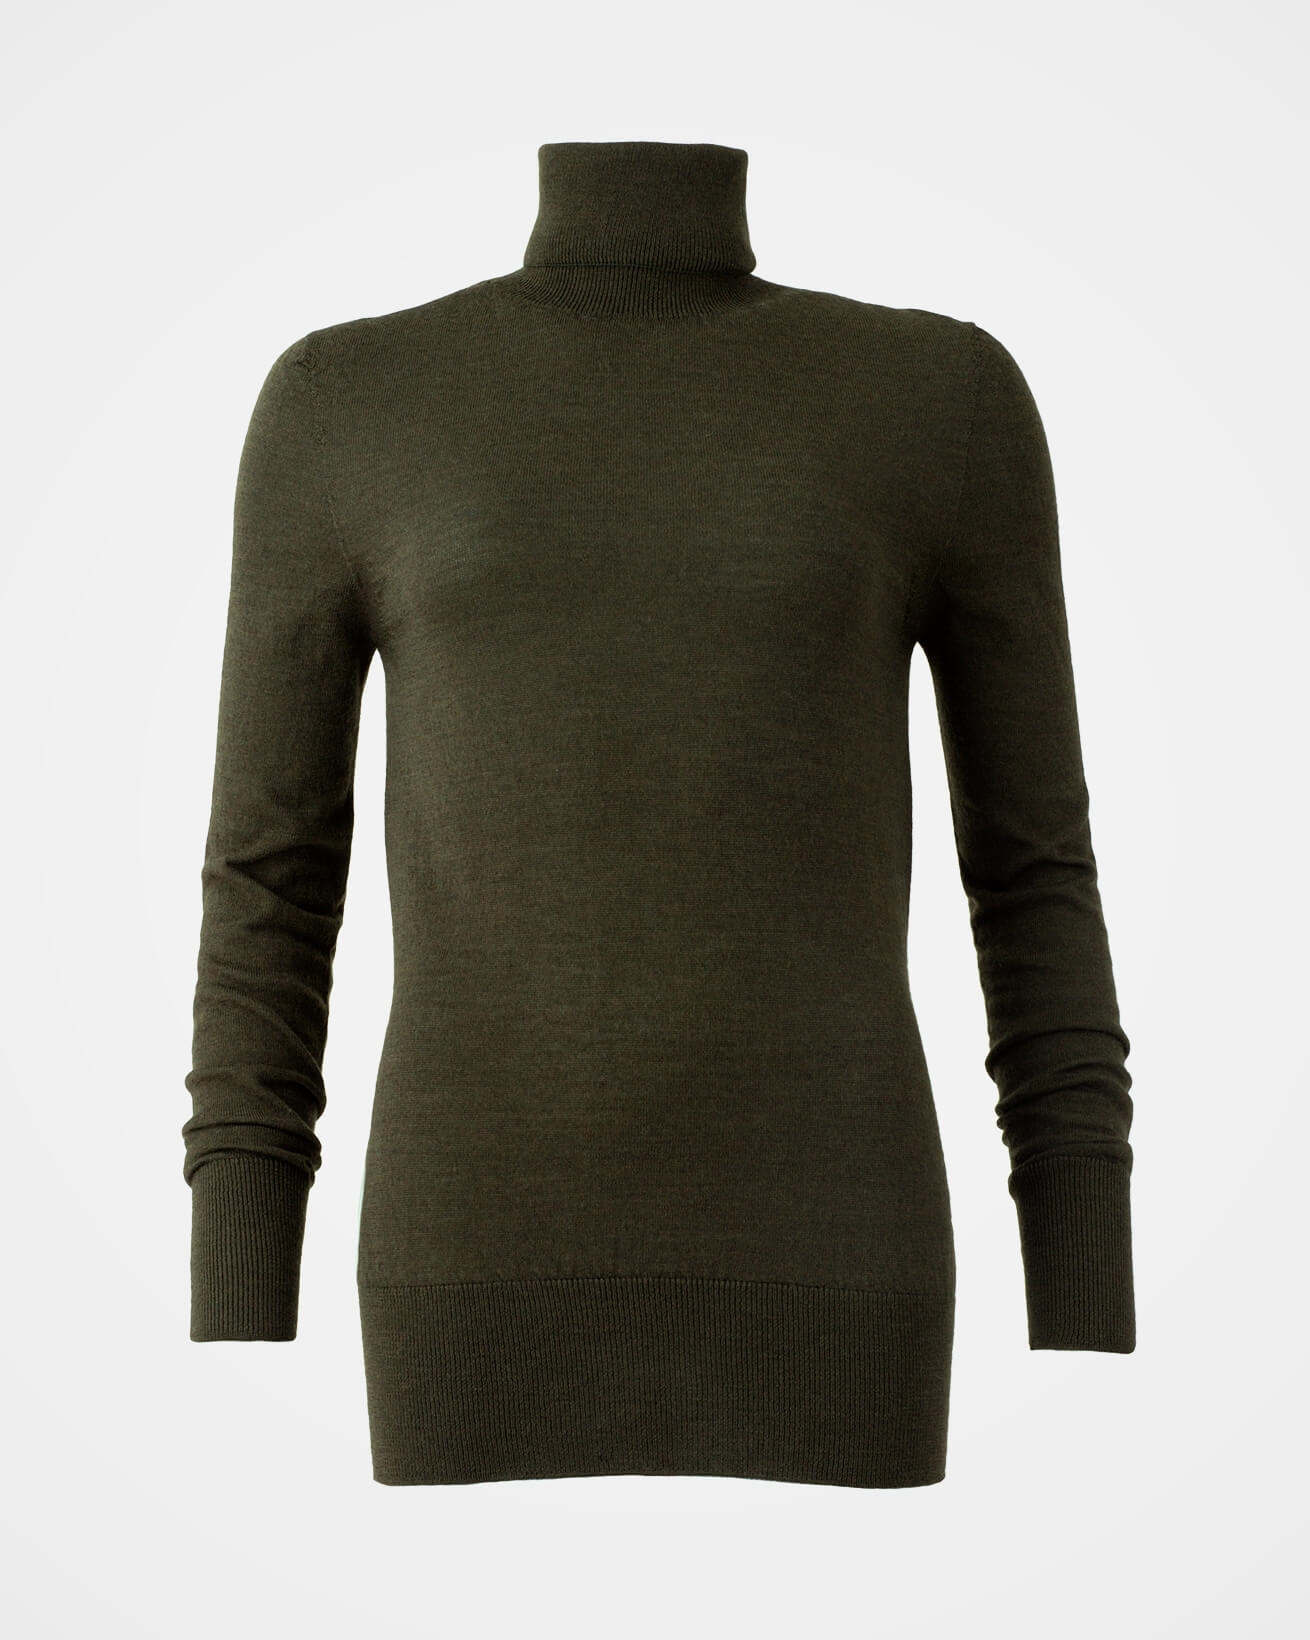 Merino Roll neck Jumper - Size Medium - Olive - 1537